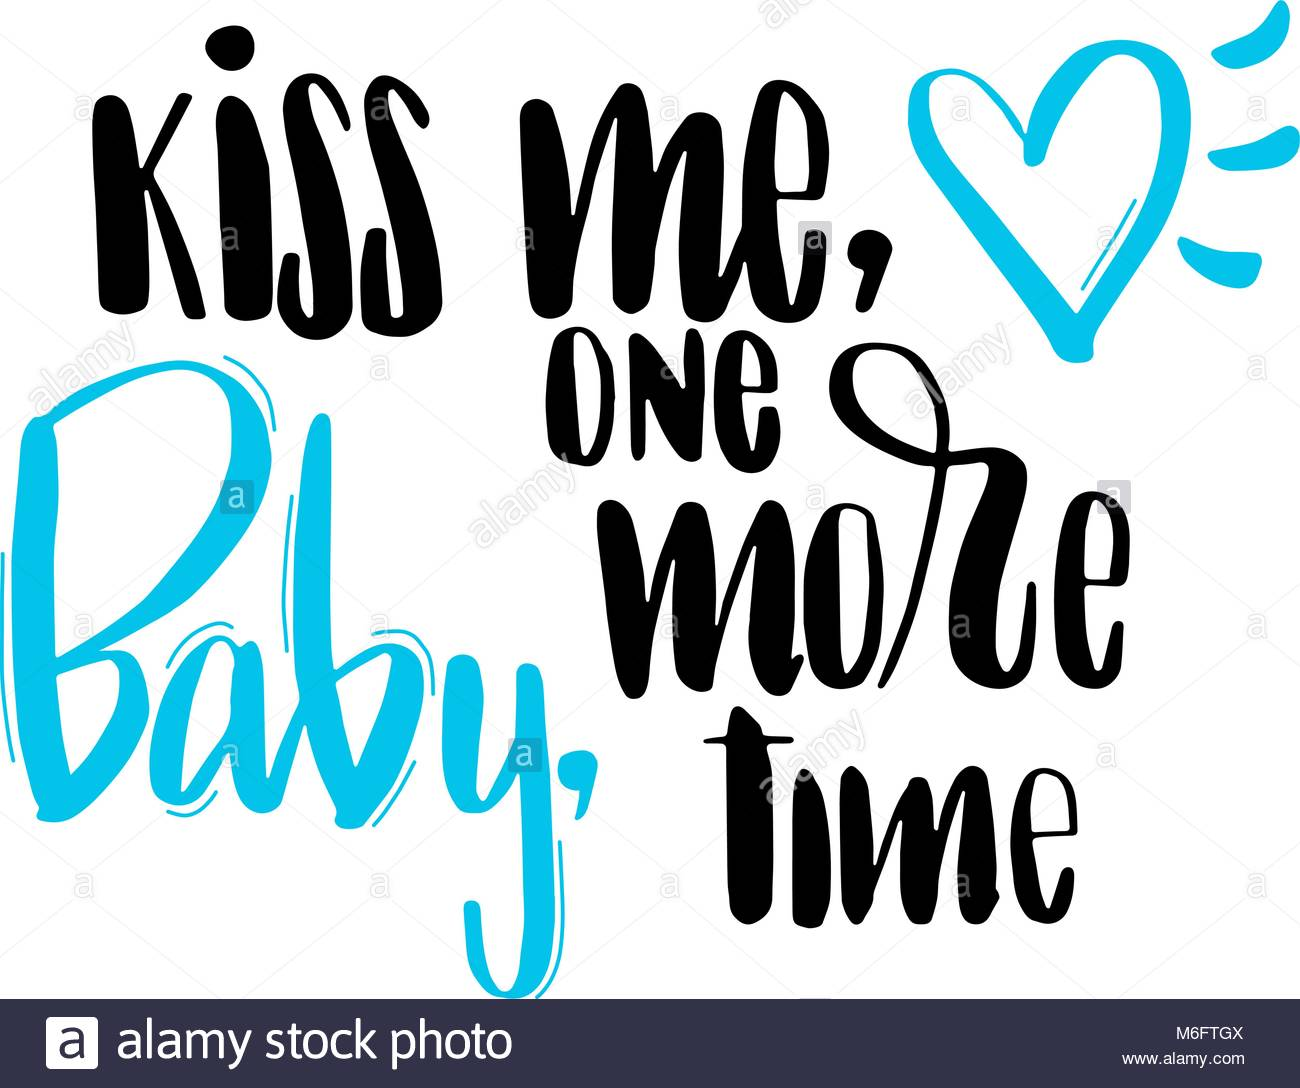 Text Kiss me baby one more time in black with blue heart. For card, postcard, page ect. Hand drawn calligraphy text. - Stock Vector